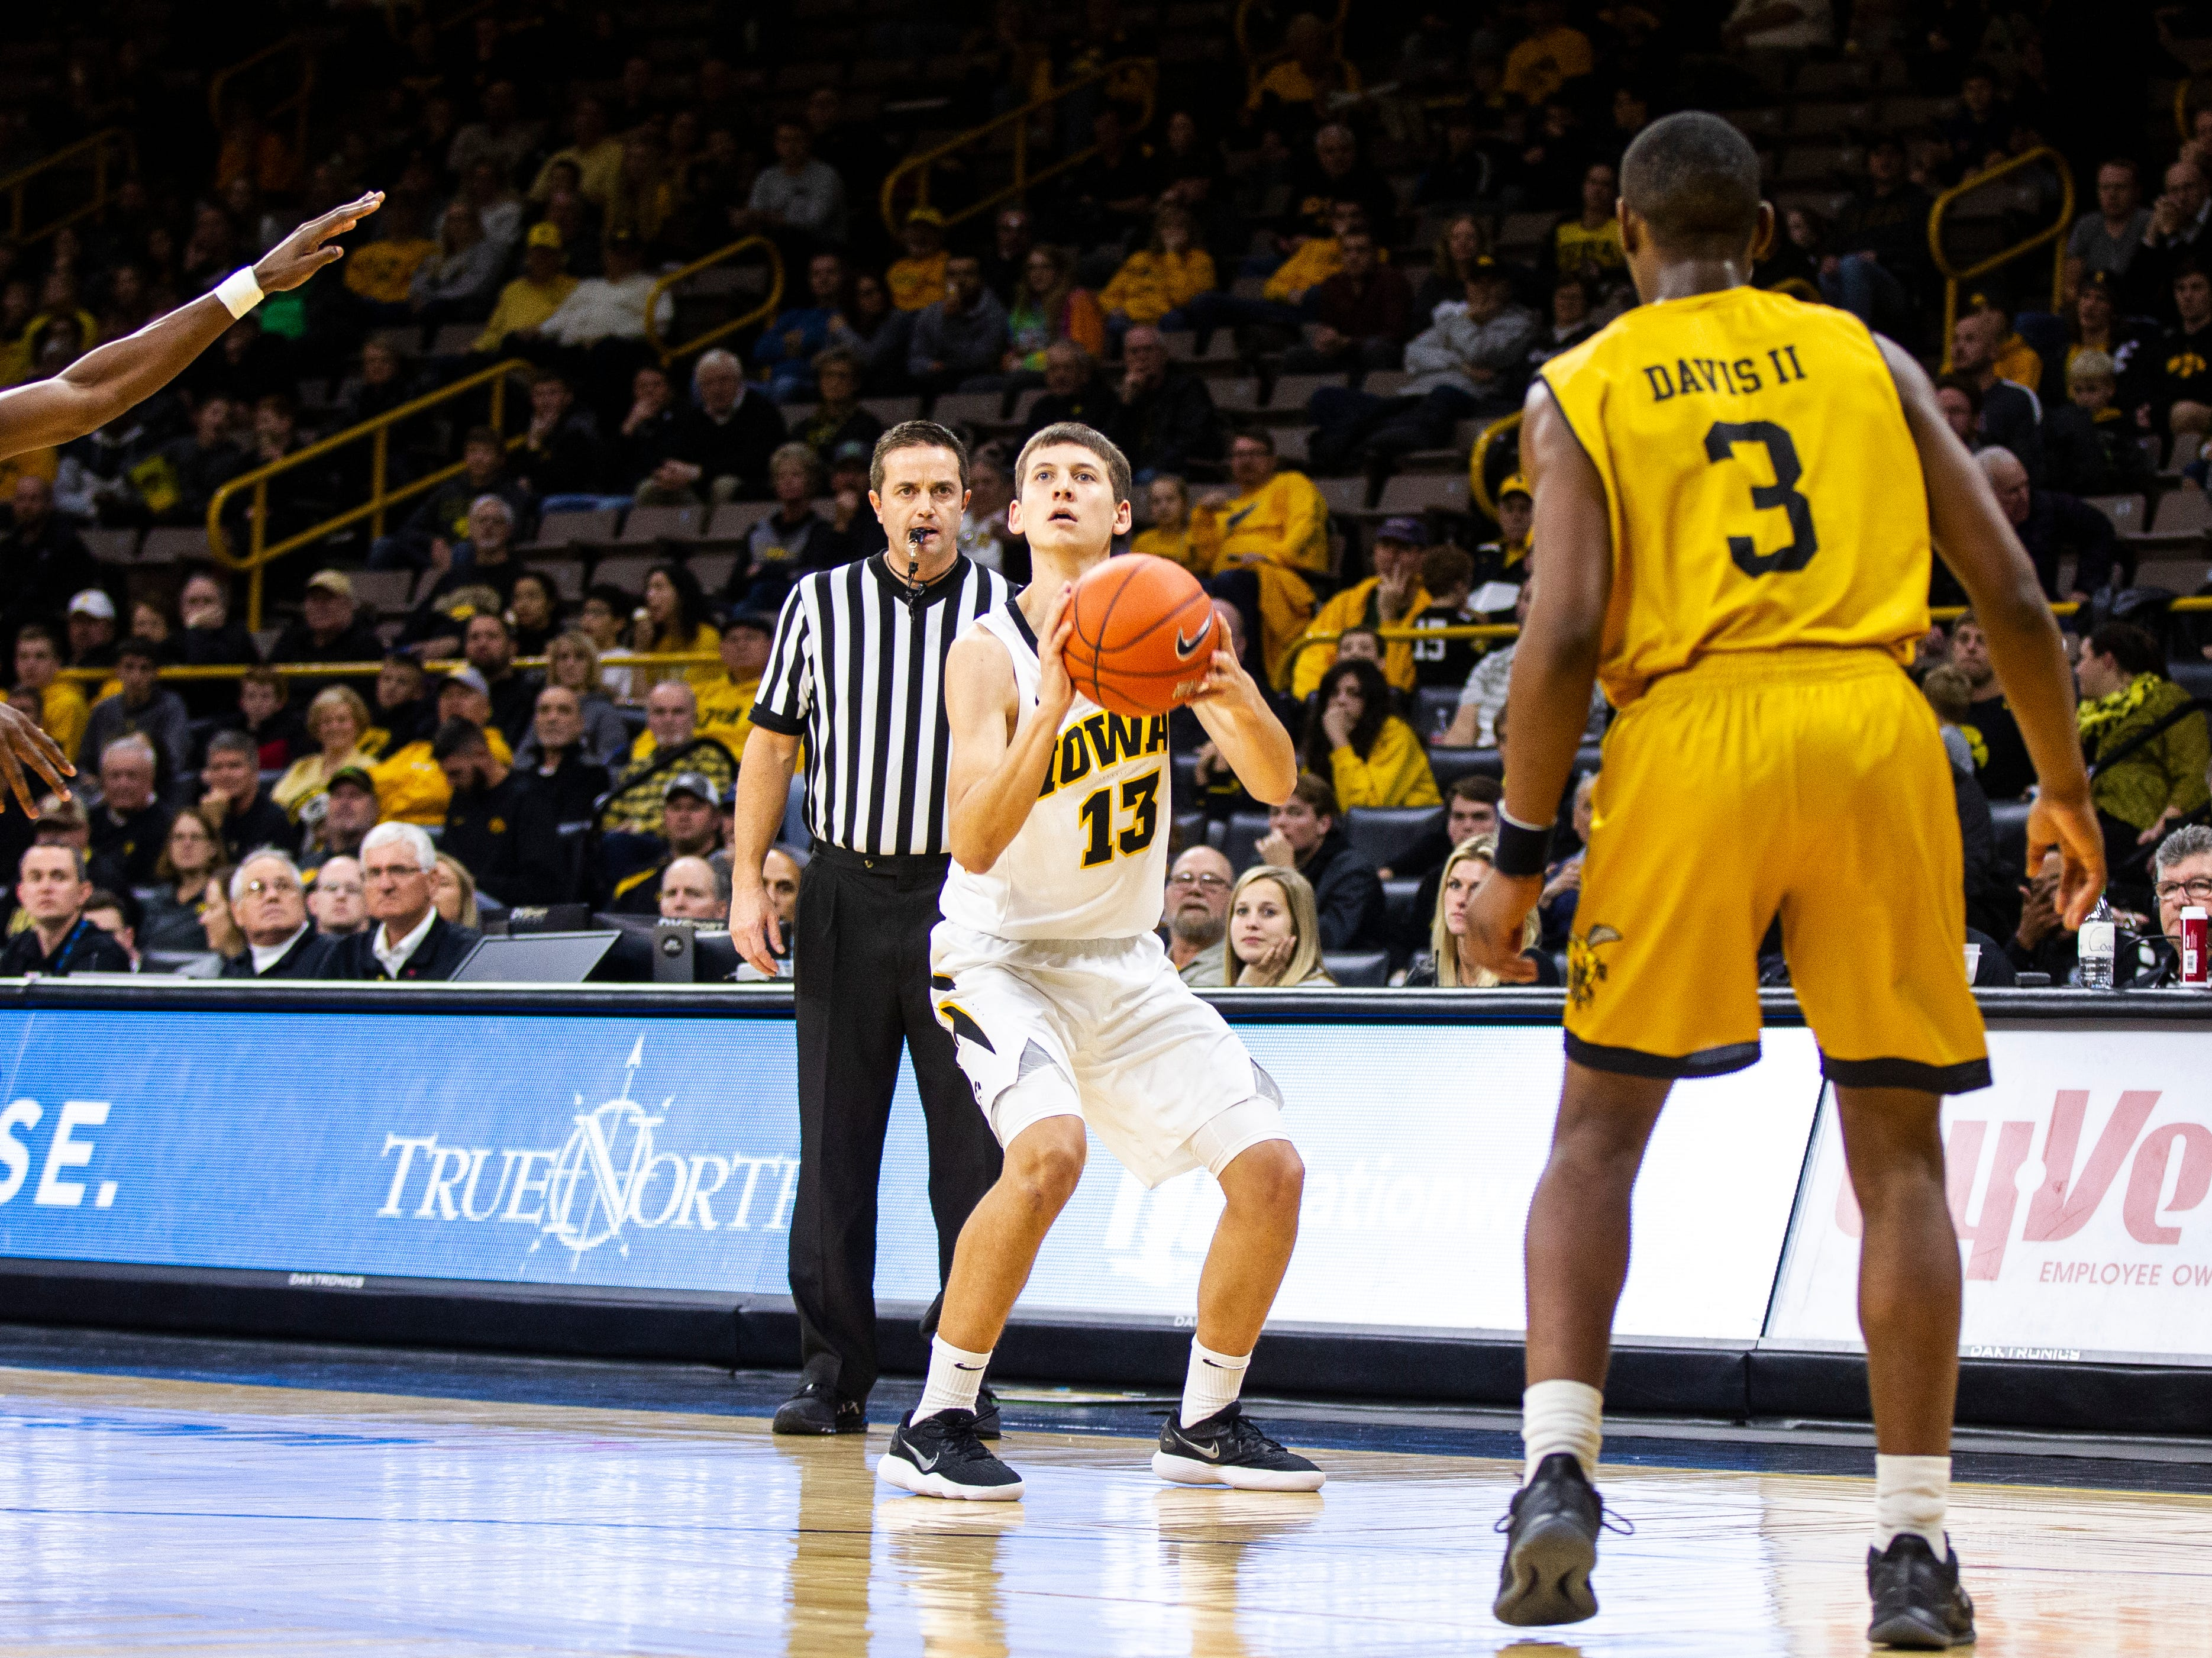 Iowa guard Austin Ash (13) shoots a 3-point basket during an NCAA men's basketball game on Wednesday, Nov. 21, 2018, at Carver-Hawkeye Arena in Iowa City.